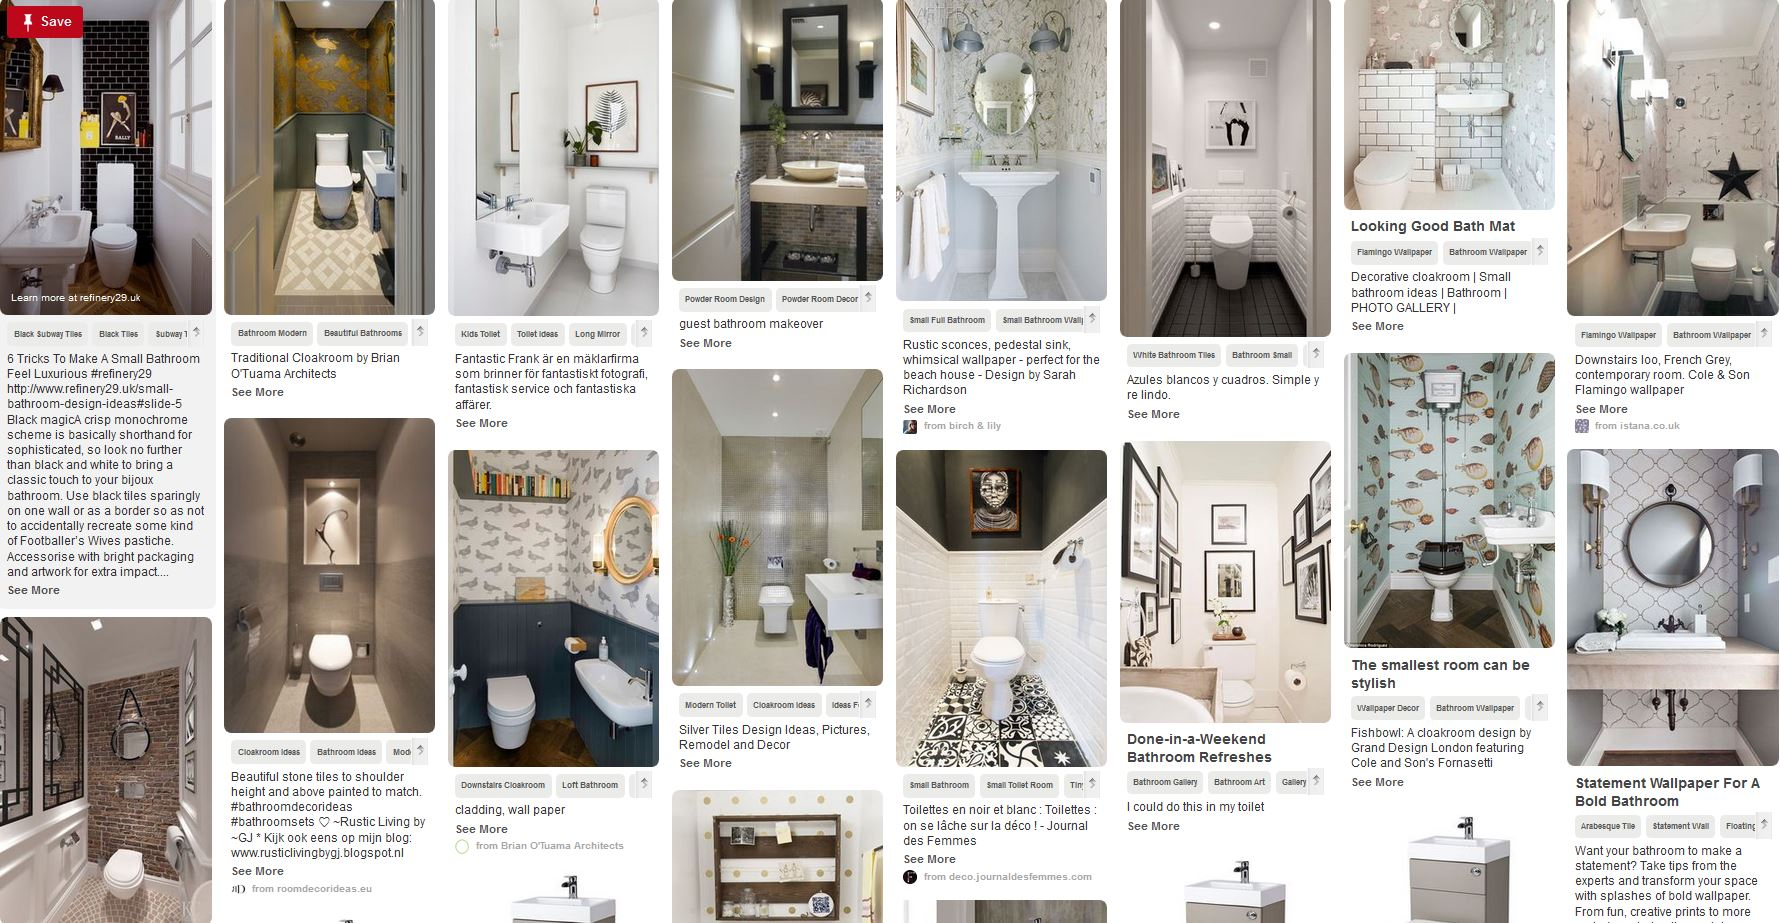 Cloakroom Suites - How to Design a Stylish and Functional Space